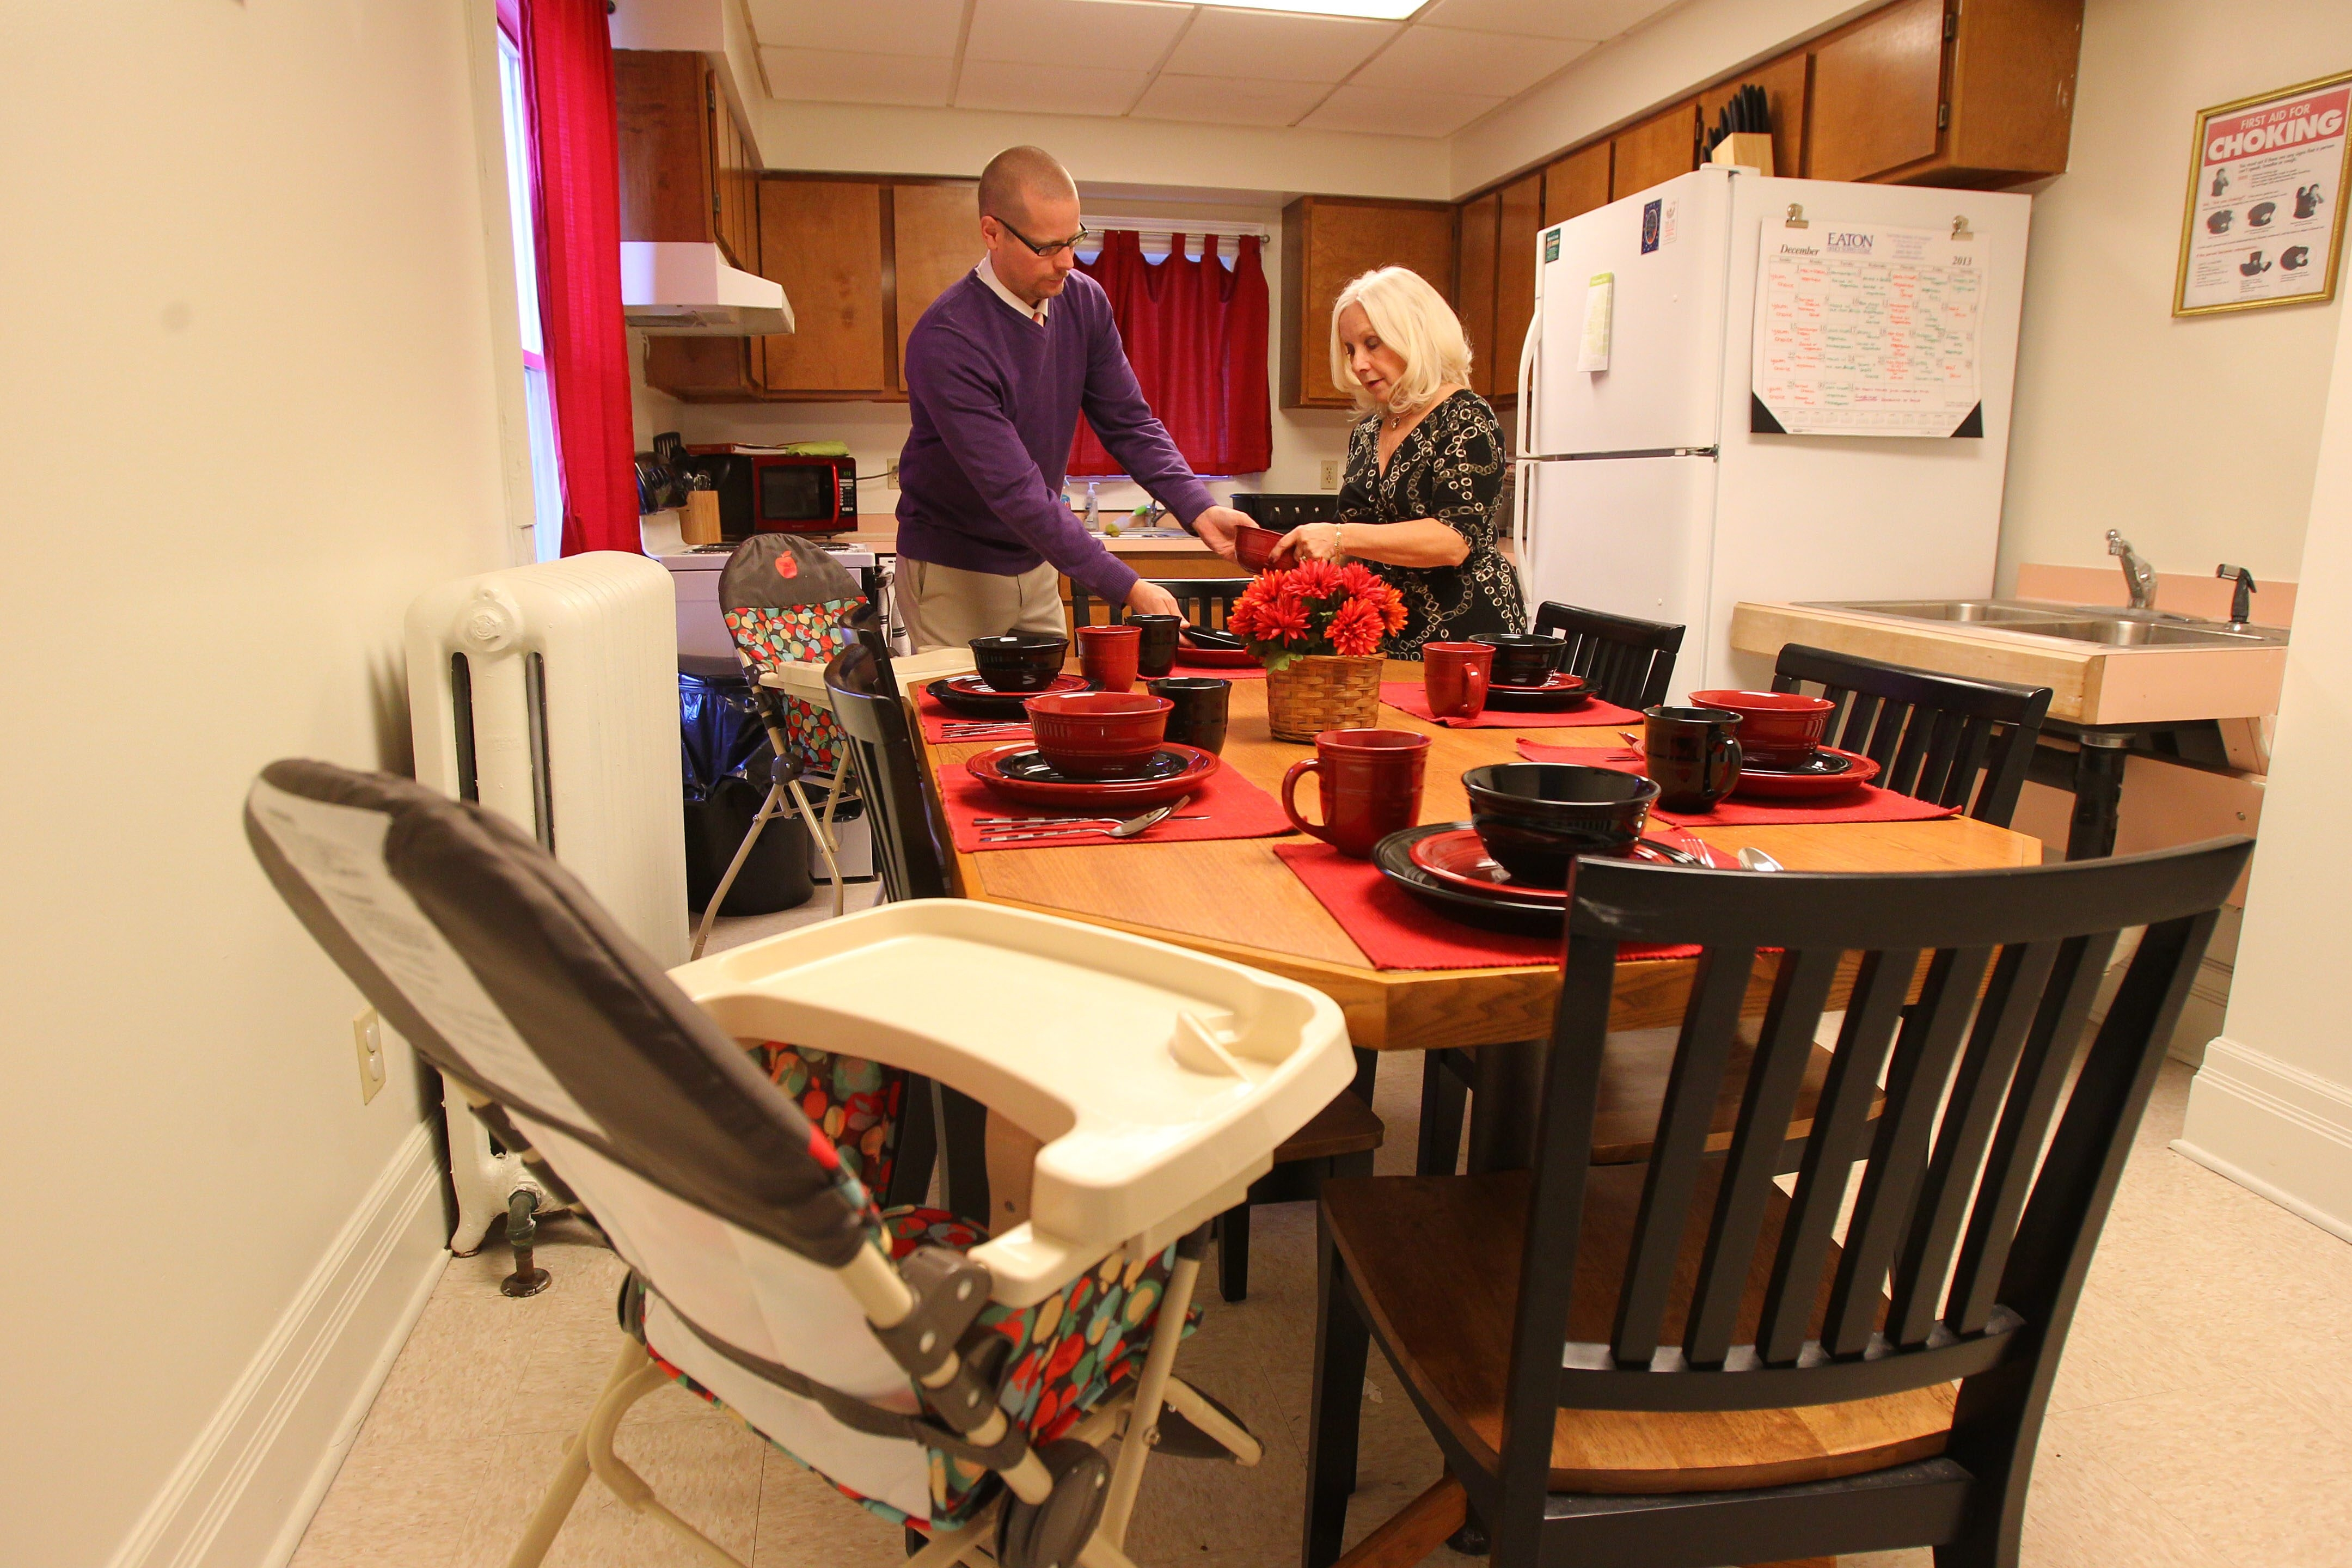 Jeffrey Wierzbicki, director of youth services, and Jennifer Tresch, director of development, set the table in the kitchen of the building for young mothers.